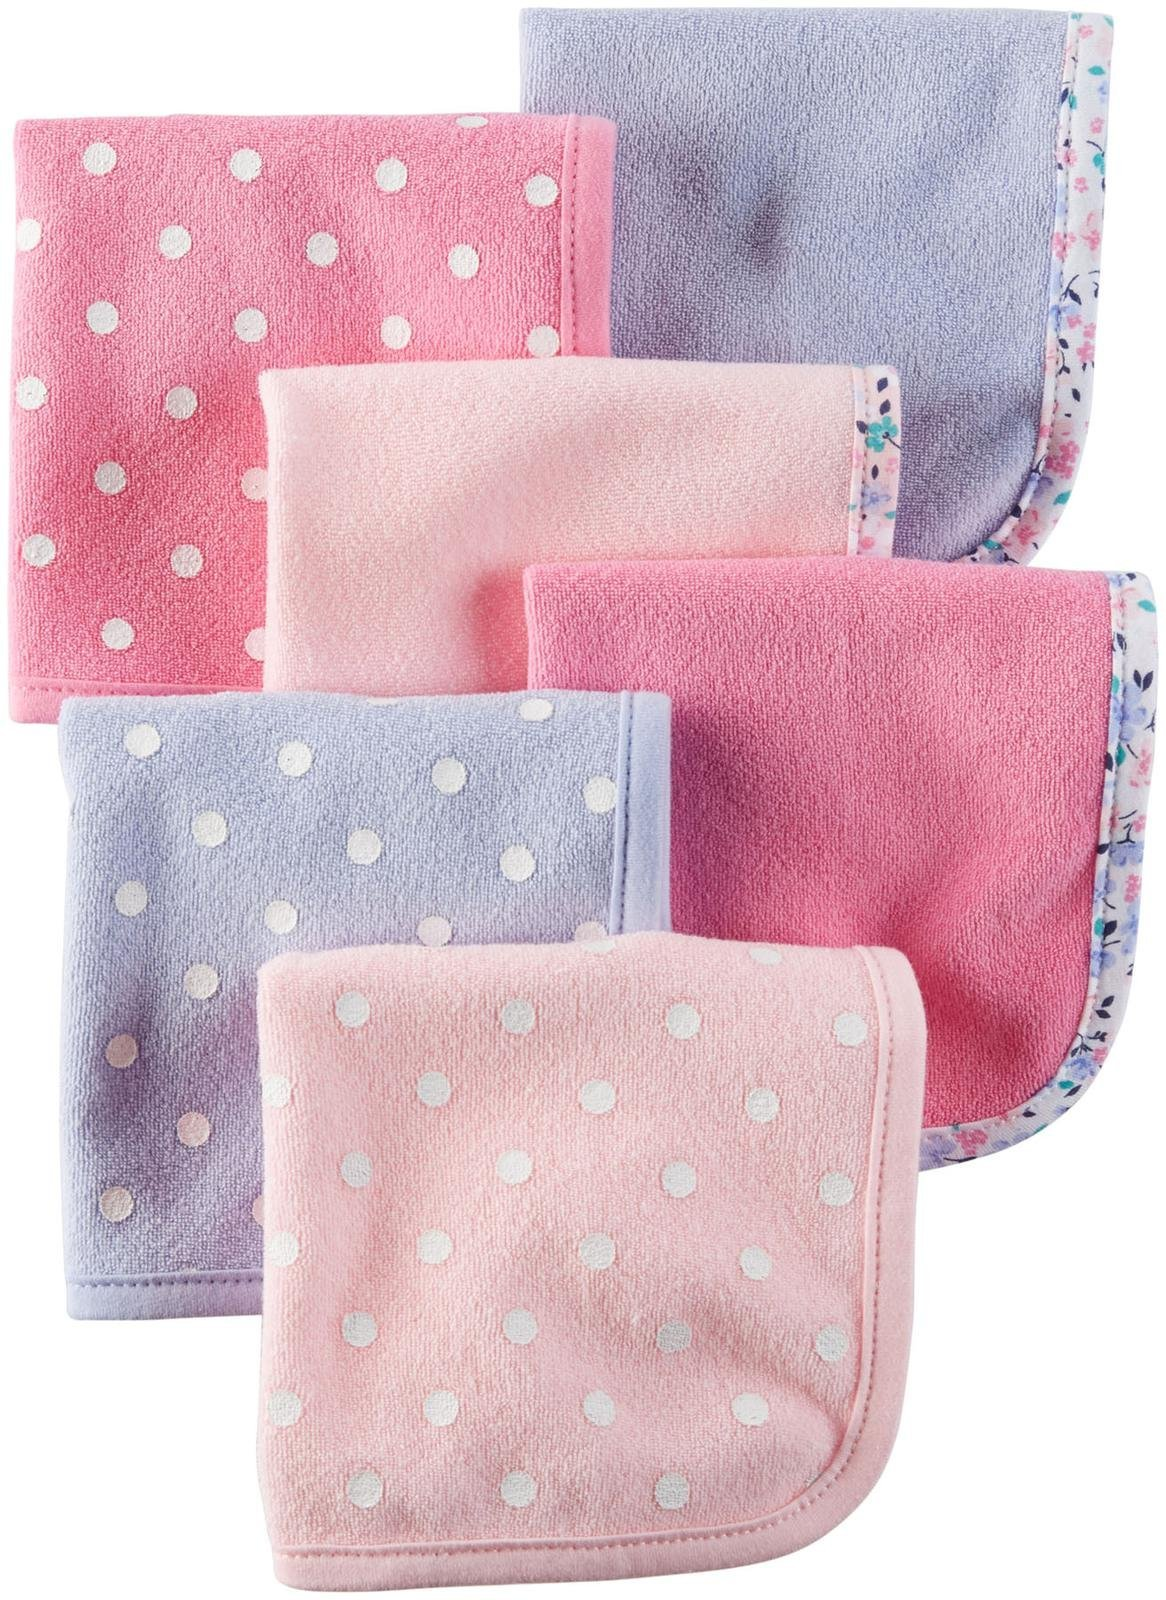 Carter's Terry Washcloth Set - Pink/Light Blue - 6 ct